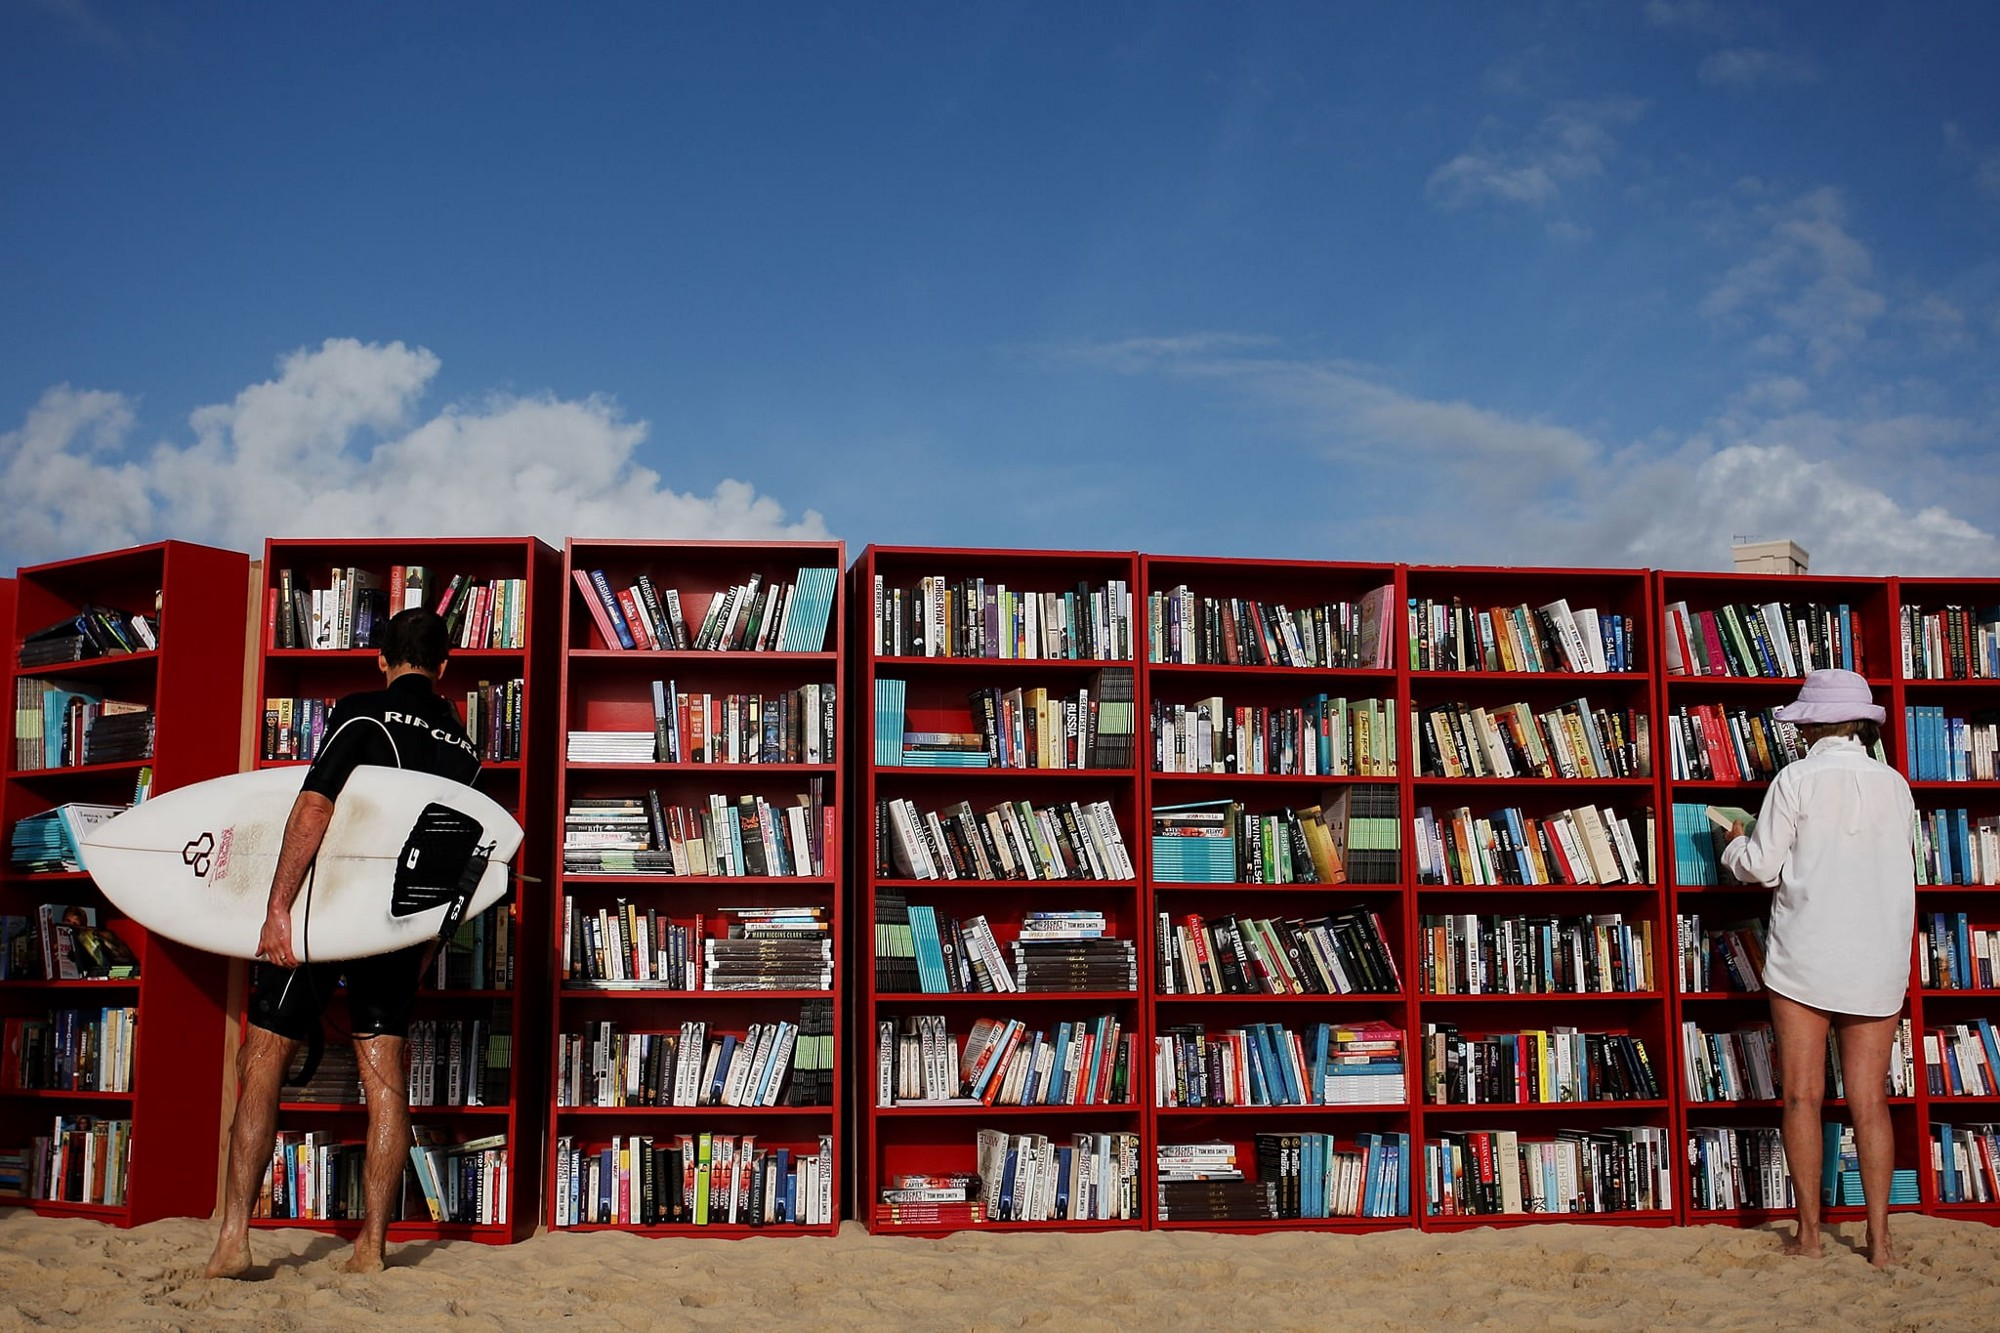 Surfer by a bookshelf at Sydney's Bondi Beach